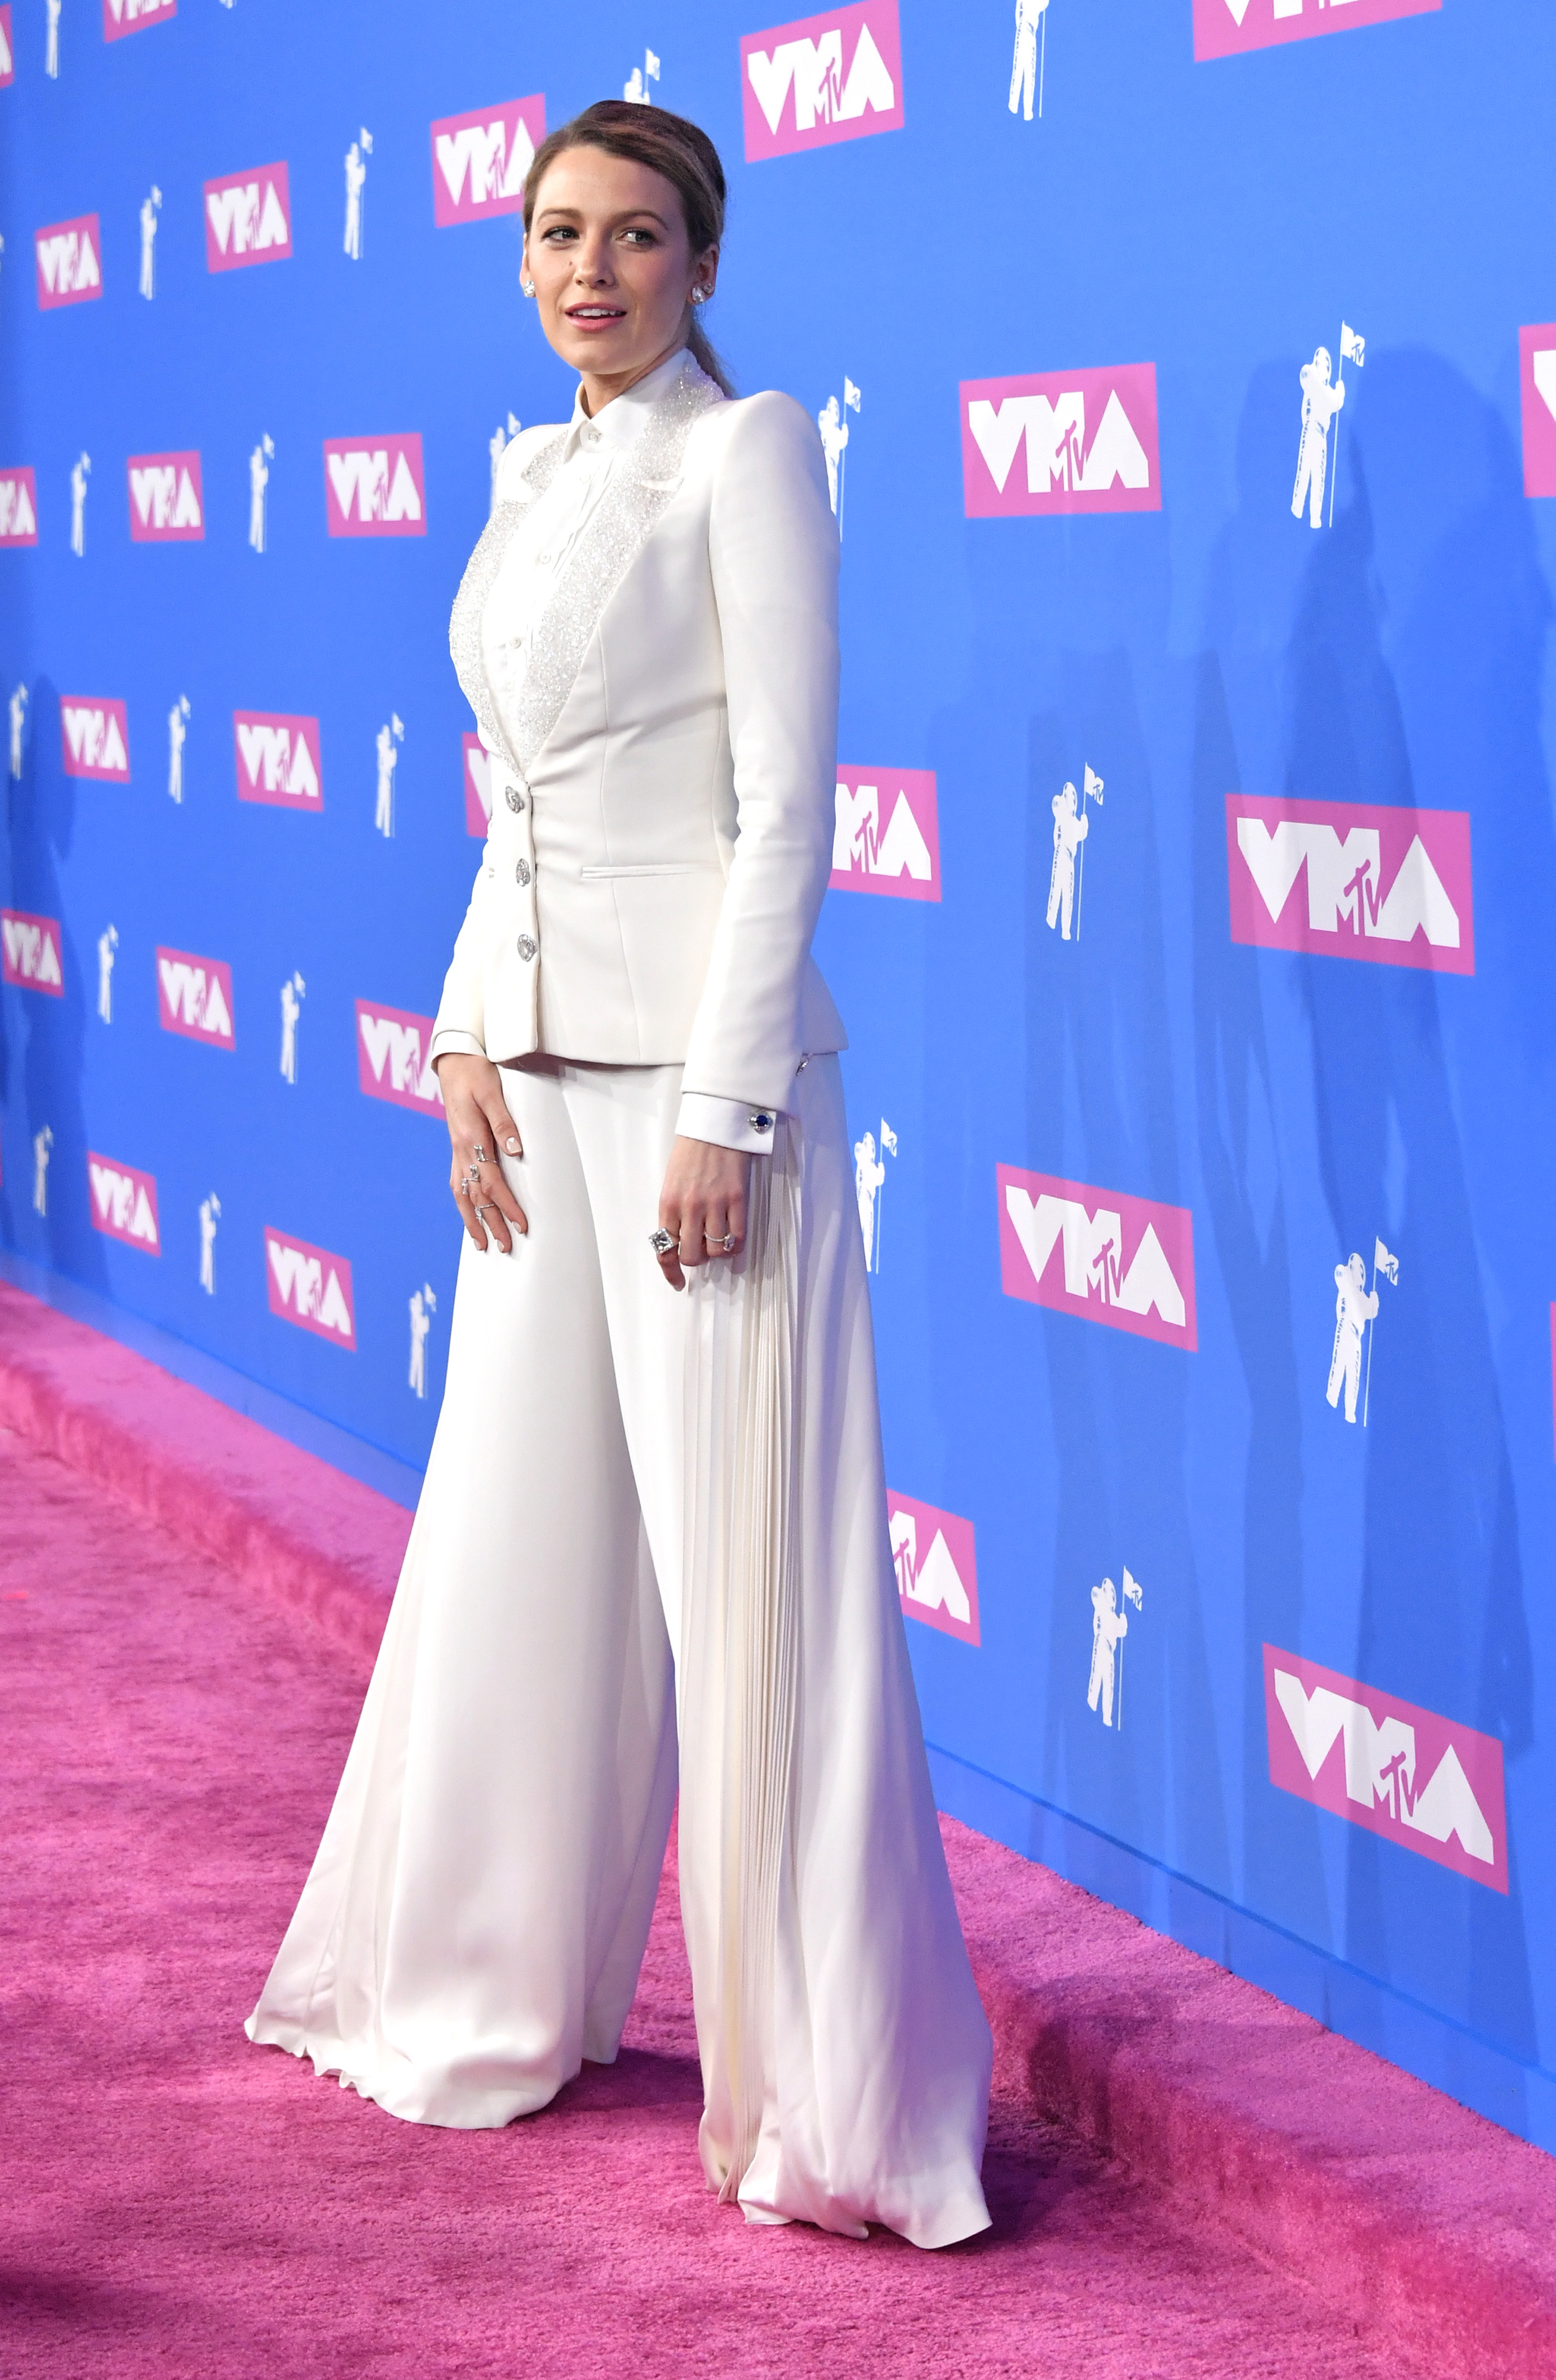 Blake Lively attends the 2018 MTV Video Music Awards at Radio City Music Hall on August 20, 2018 in New York City.